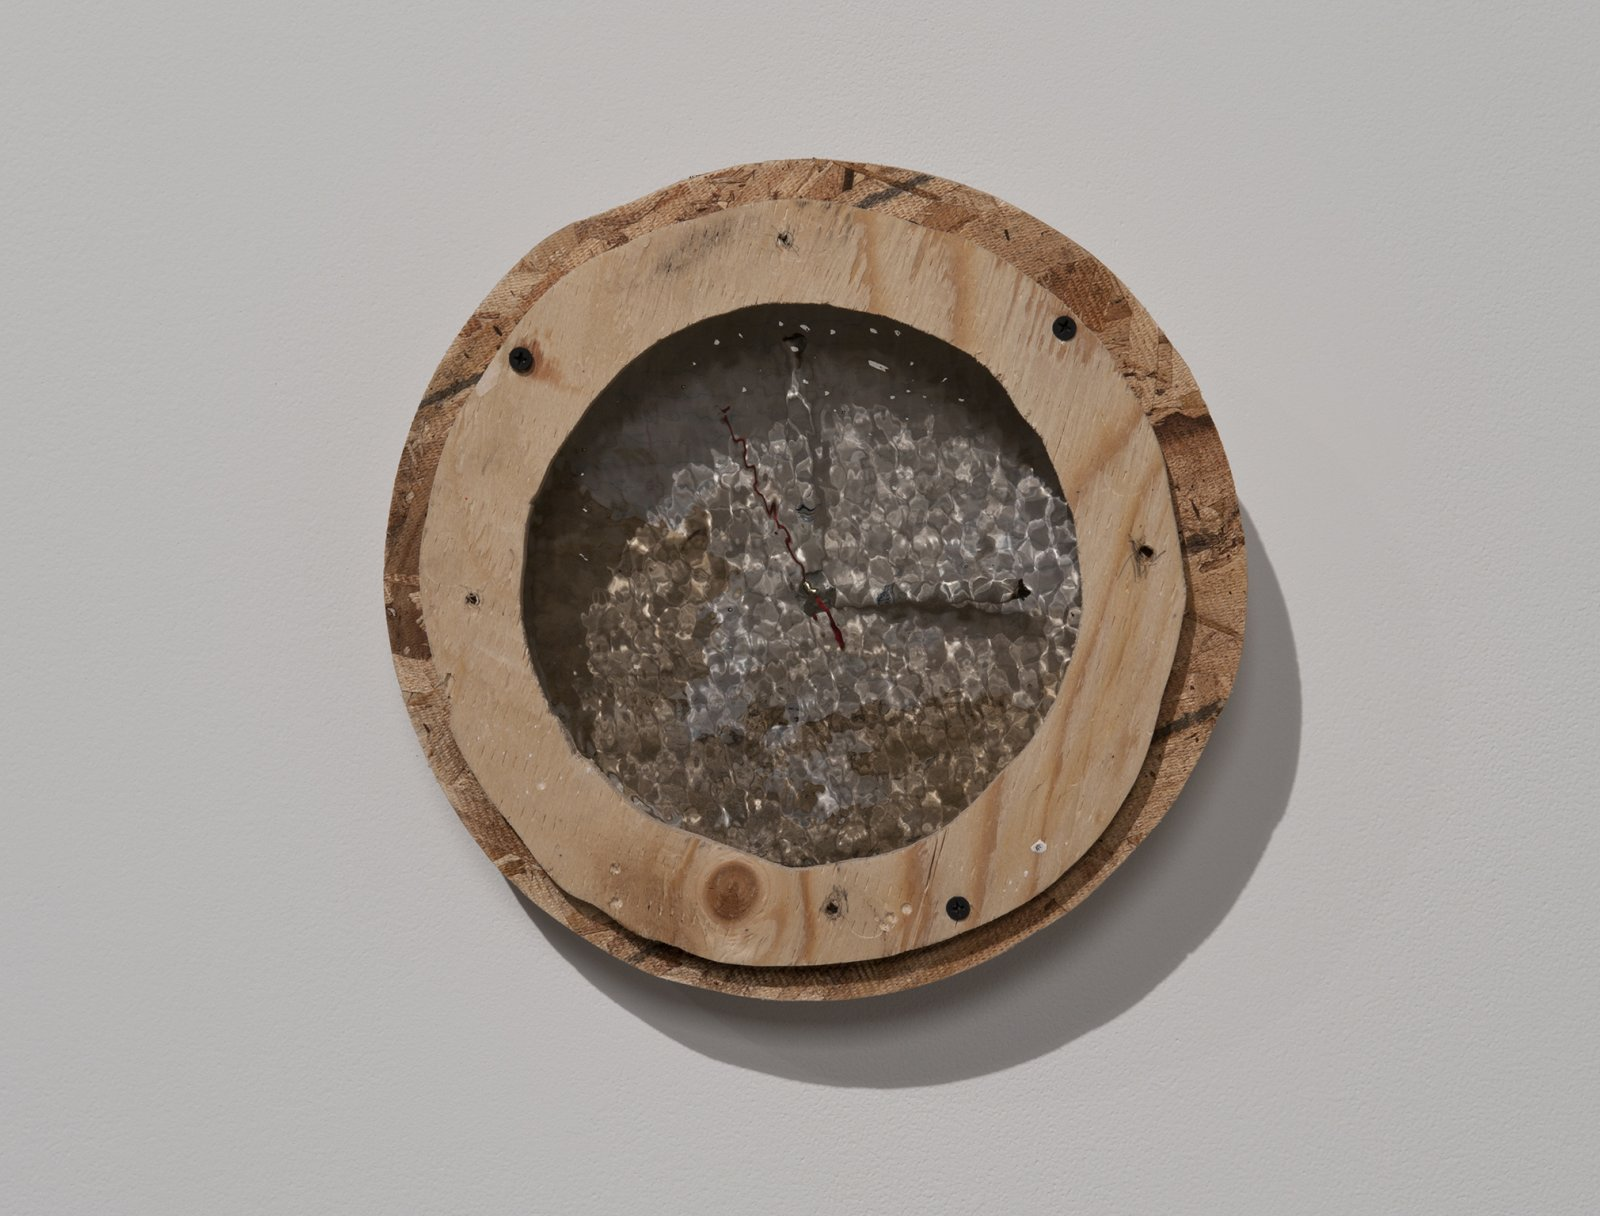 Julia Feyrer, Smoked/Muffled (Writer's Block), 2012, mixed media, 11 x 11 x 3 in. (29 x 29 x 6 cm) by Julia Feyrer